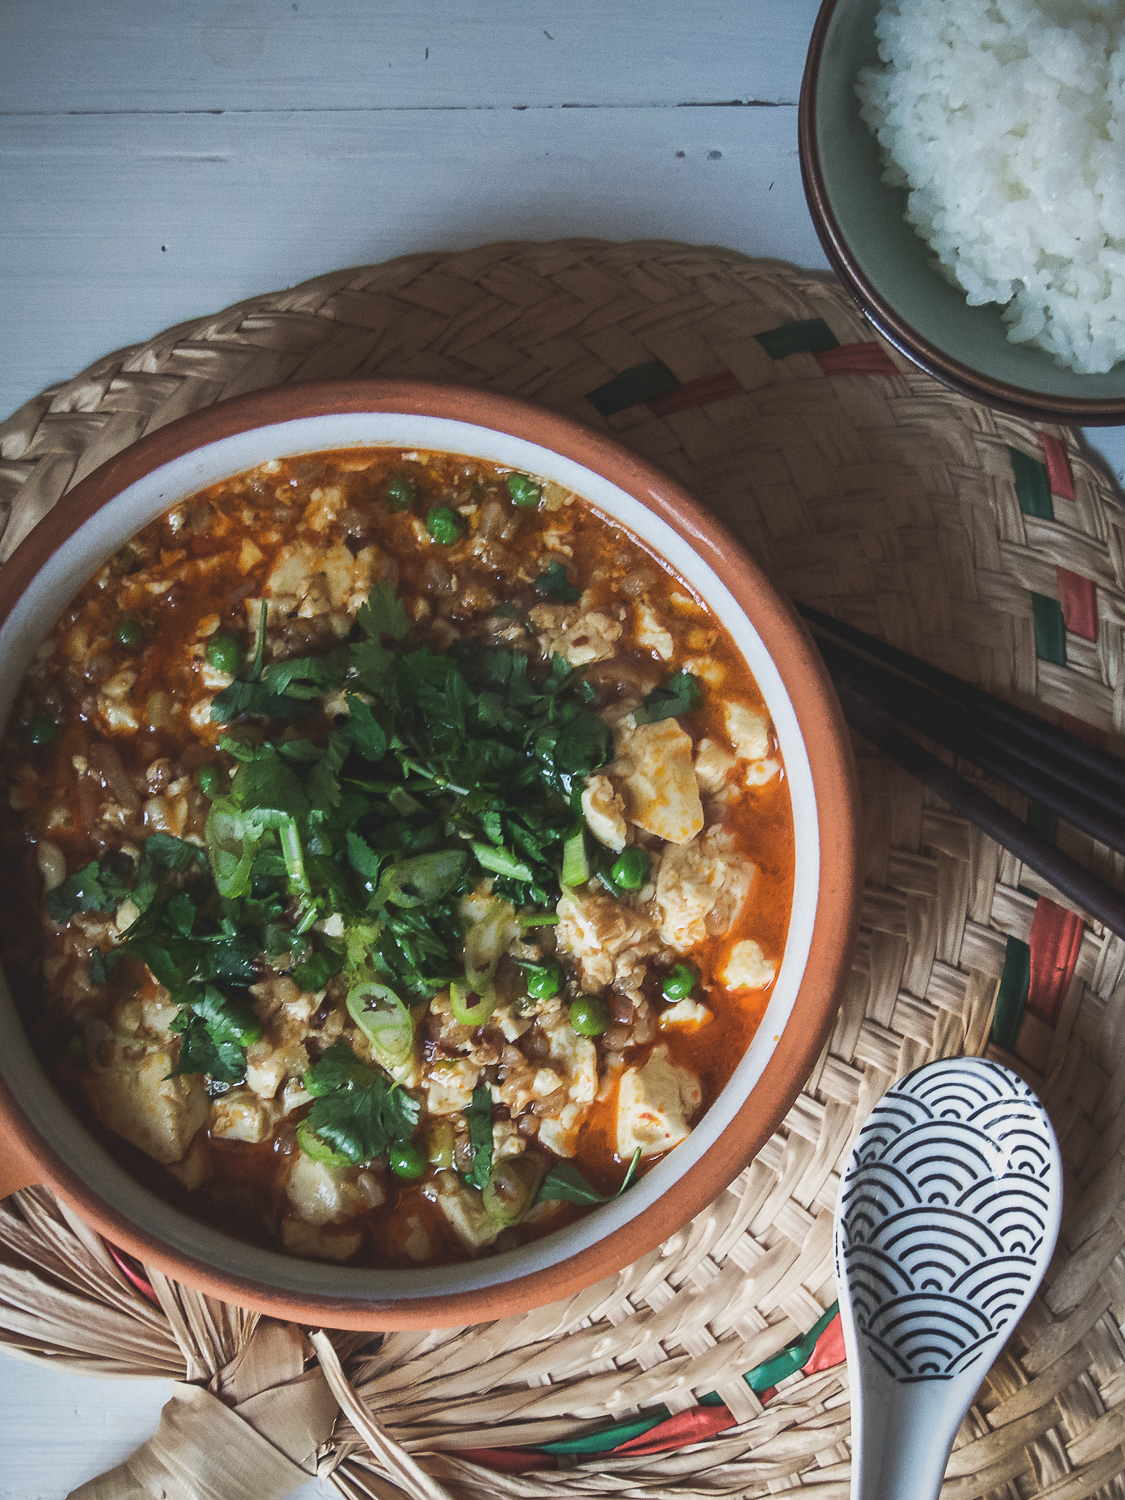 Mapo Tofu (The vegan version)